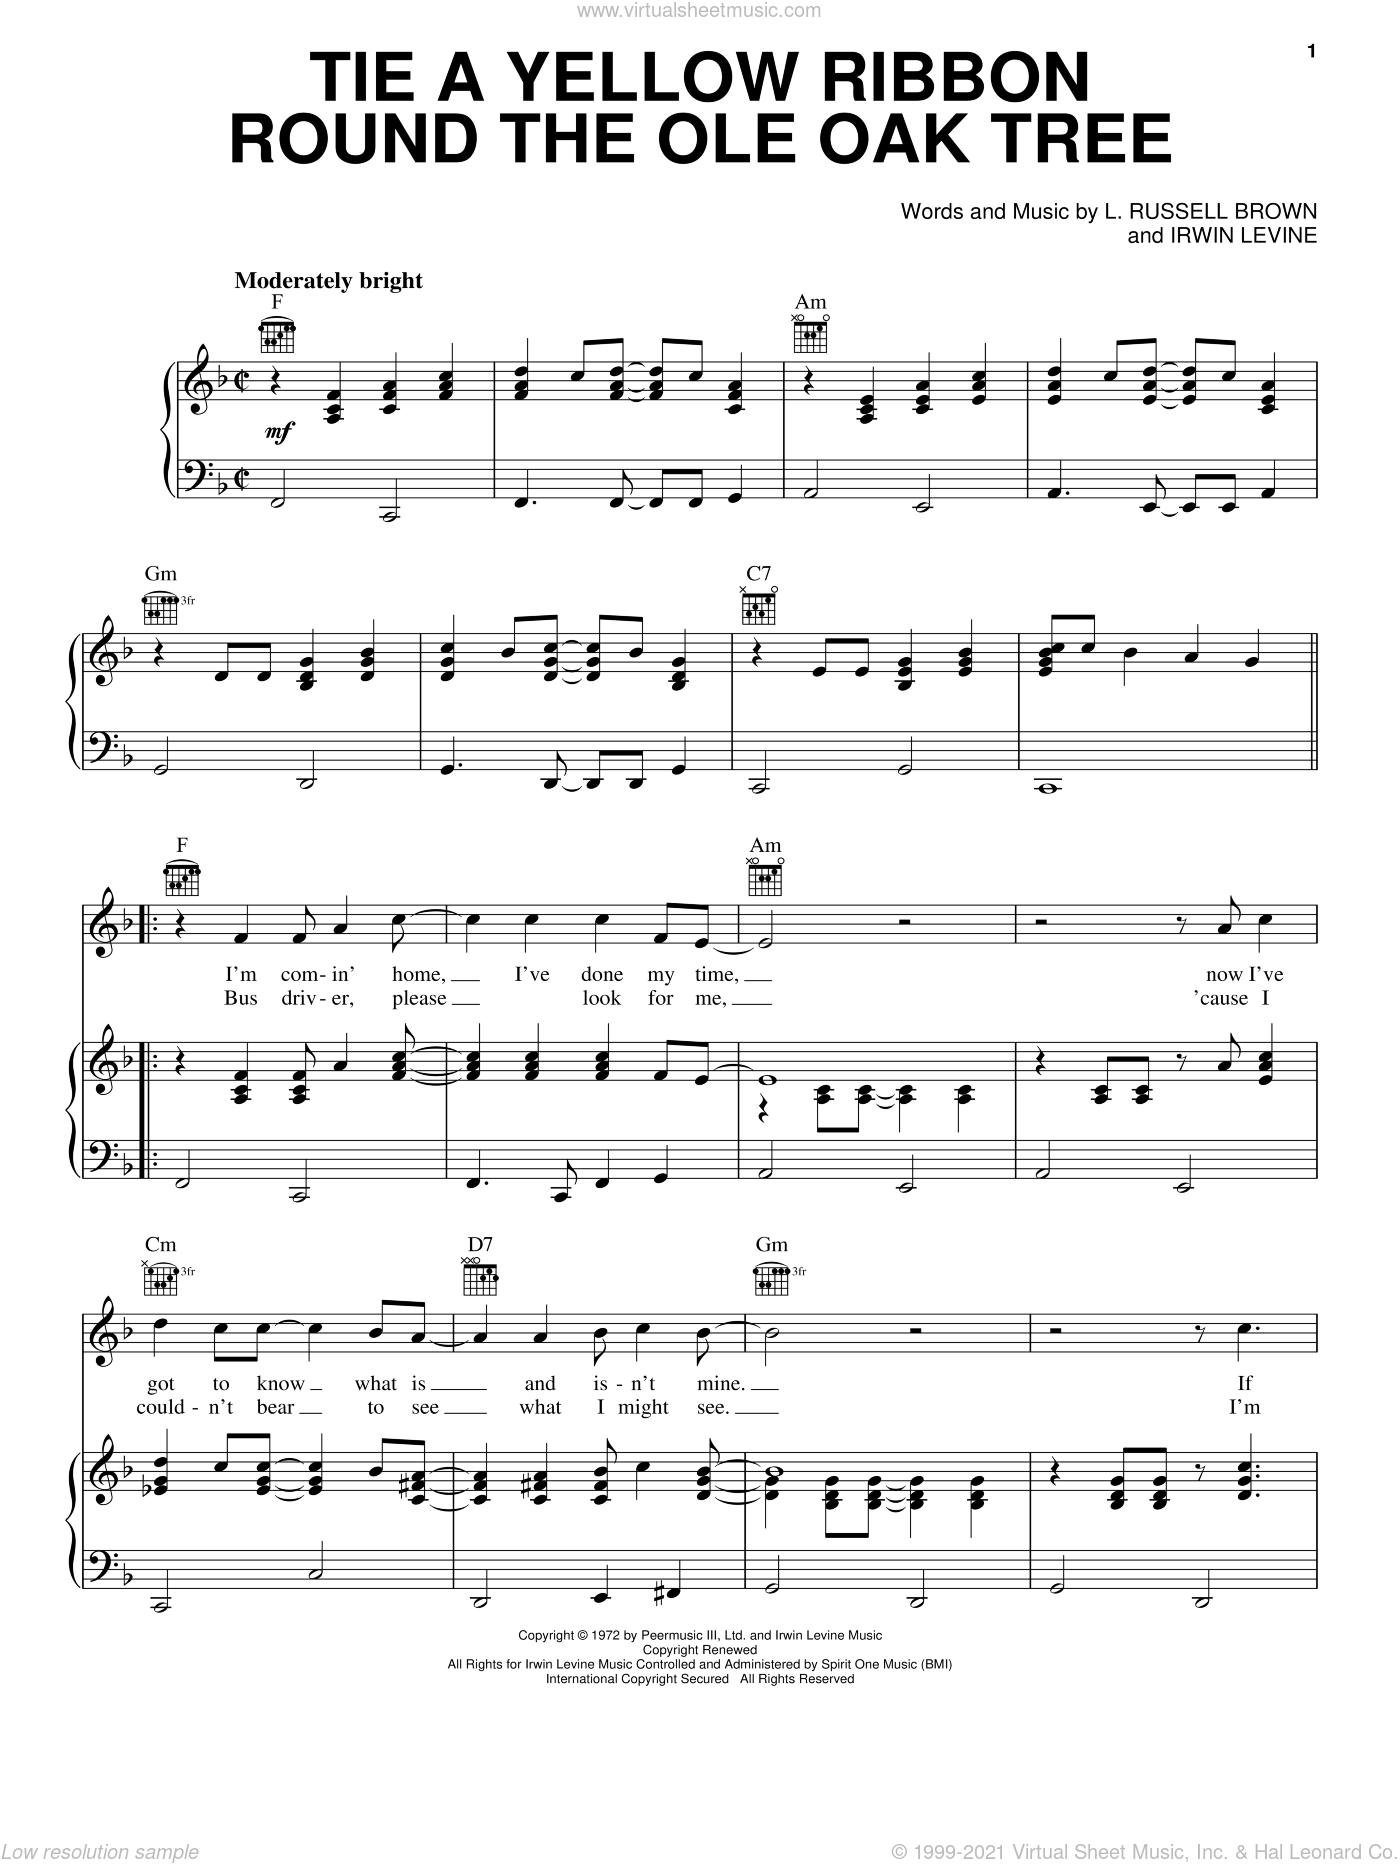 Tie A Yellow Ribbon Round The Ole Oak Tree sheet music for voice, piano or guitar by L. Russell Brown